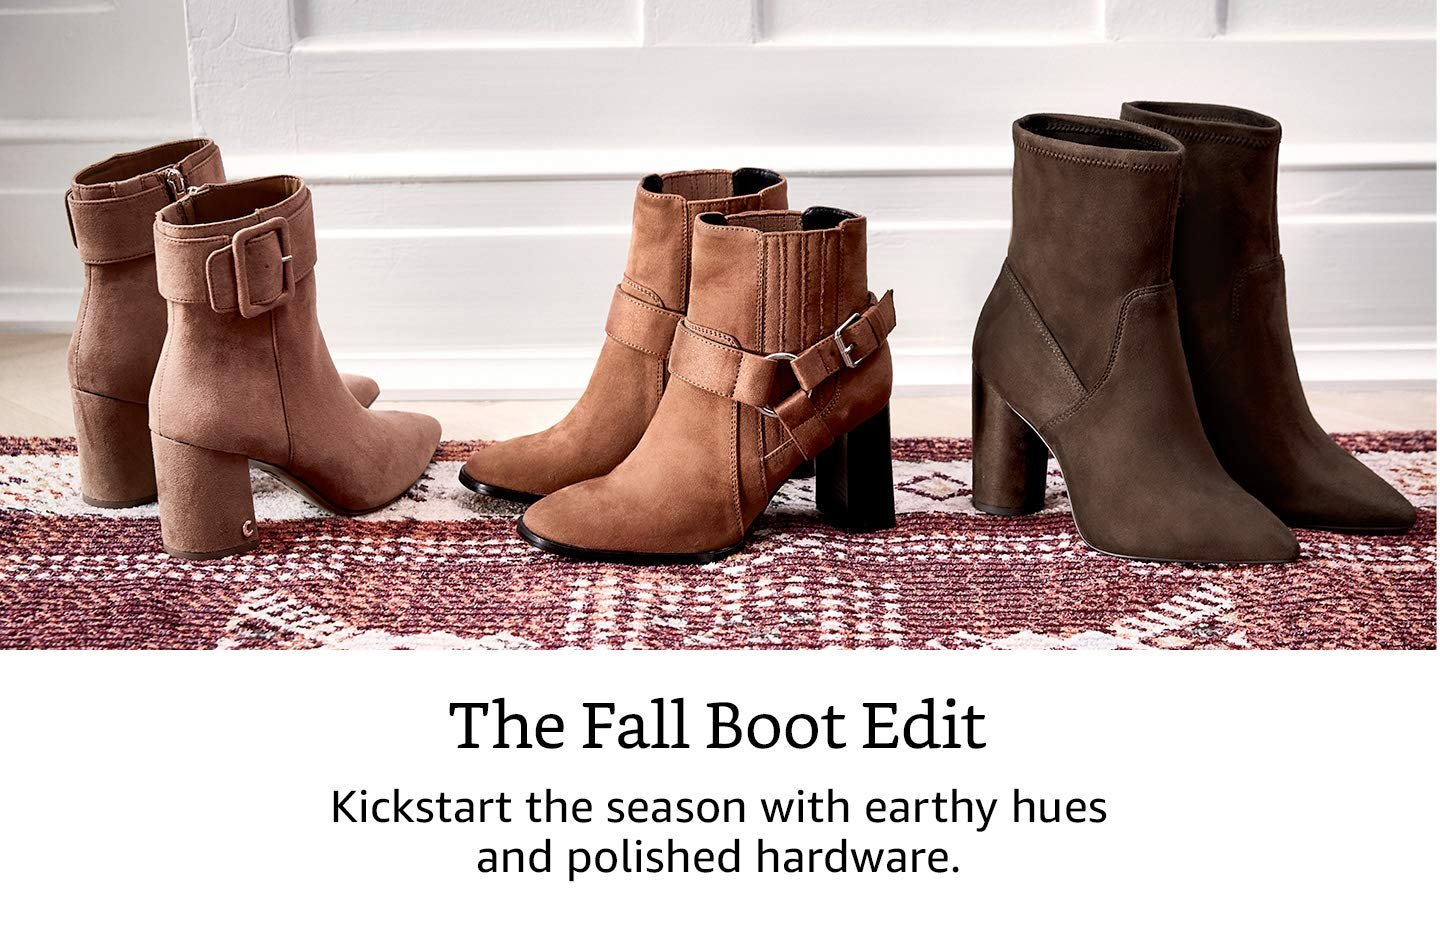 Shop these great boots for fall